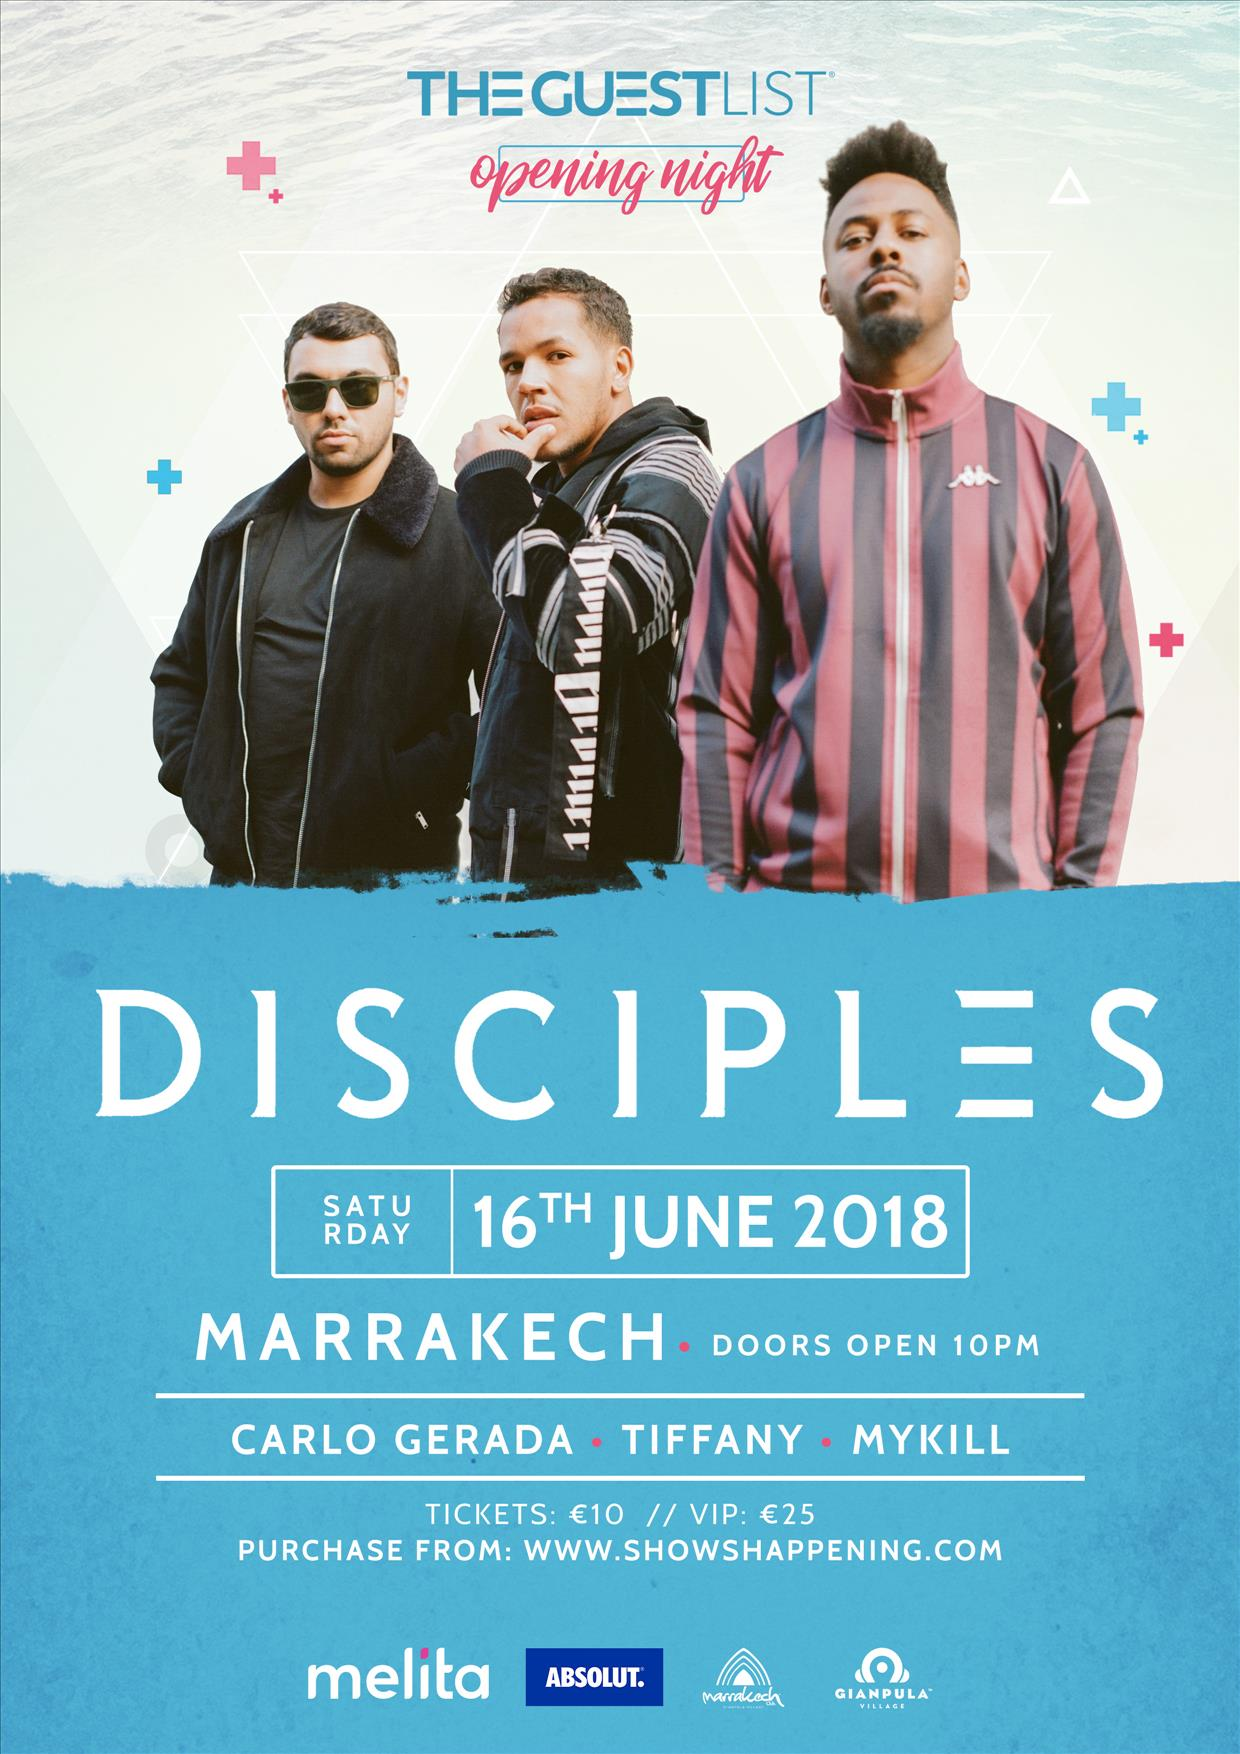 The Guestlist Opening featuring DISCIPLES 16:06:18 Marrakech Club flyer